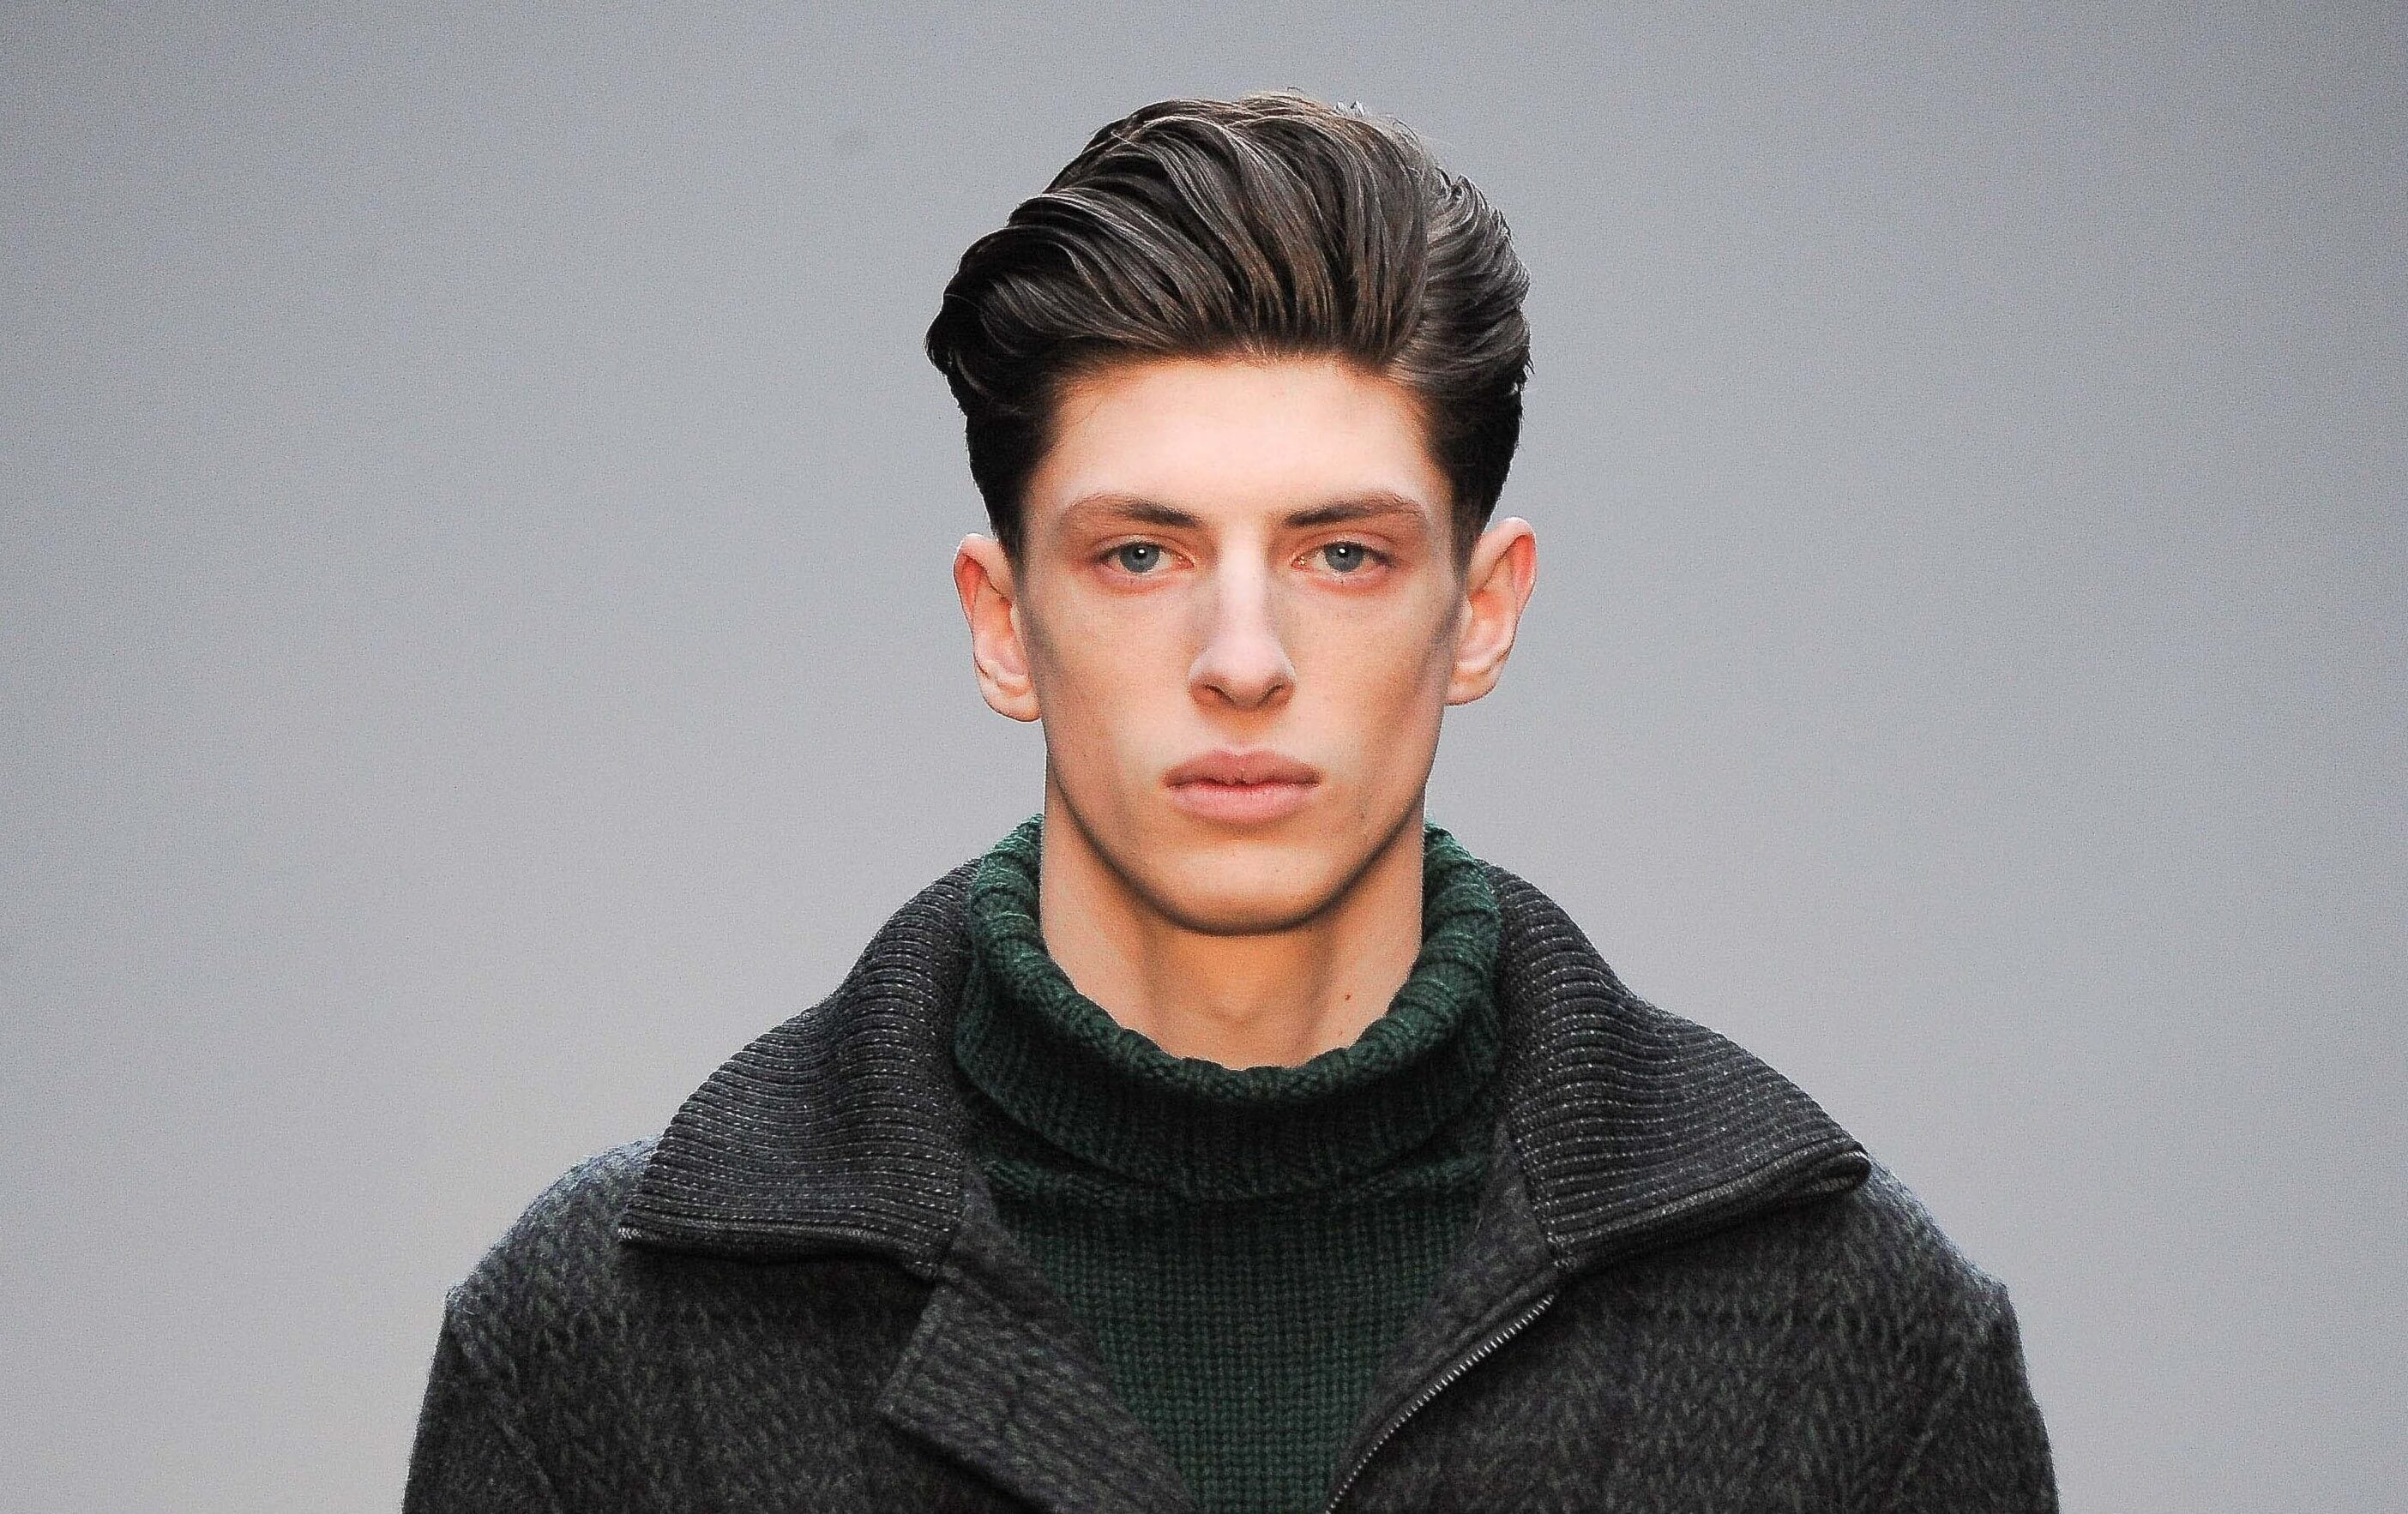 Top Styling Tips For Men With Thick Hair